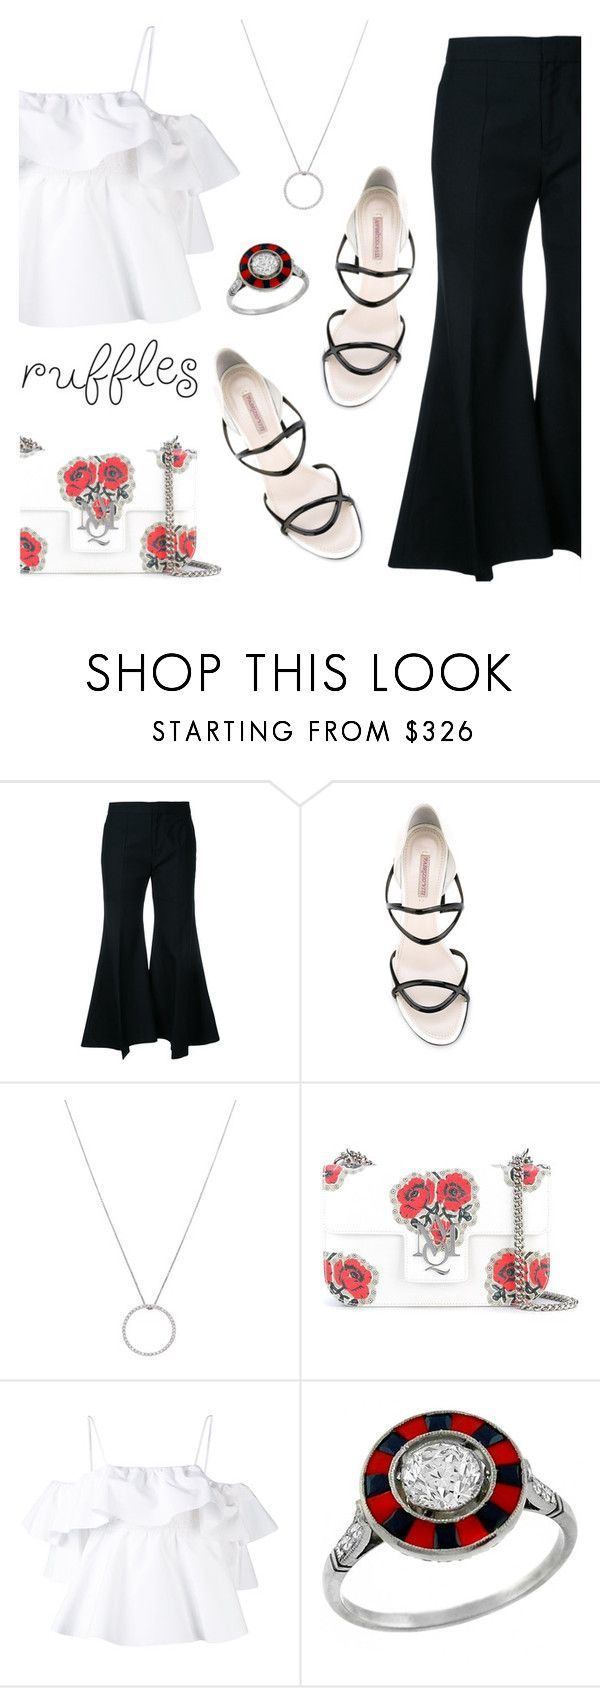 """""""Add Some Flair: Ruffled Tops"""" by dressedbyrose ❤ liked on Polyvore featuring Irene, Fabrizio Viti, Roberto Coin, Alexander McQueen, MSGM, polyvoreeditorial and ruffledtops"""